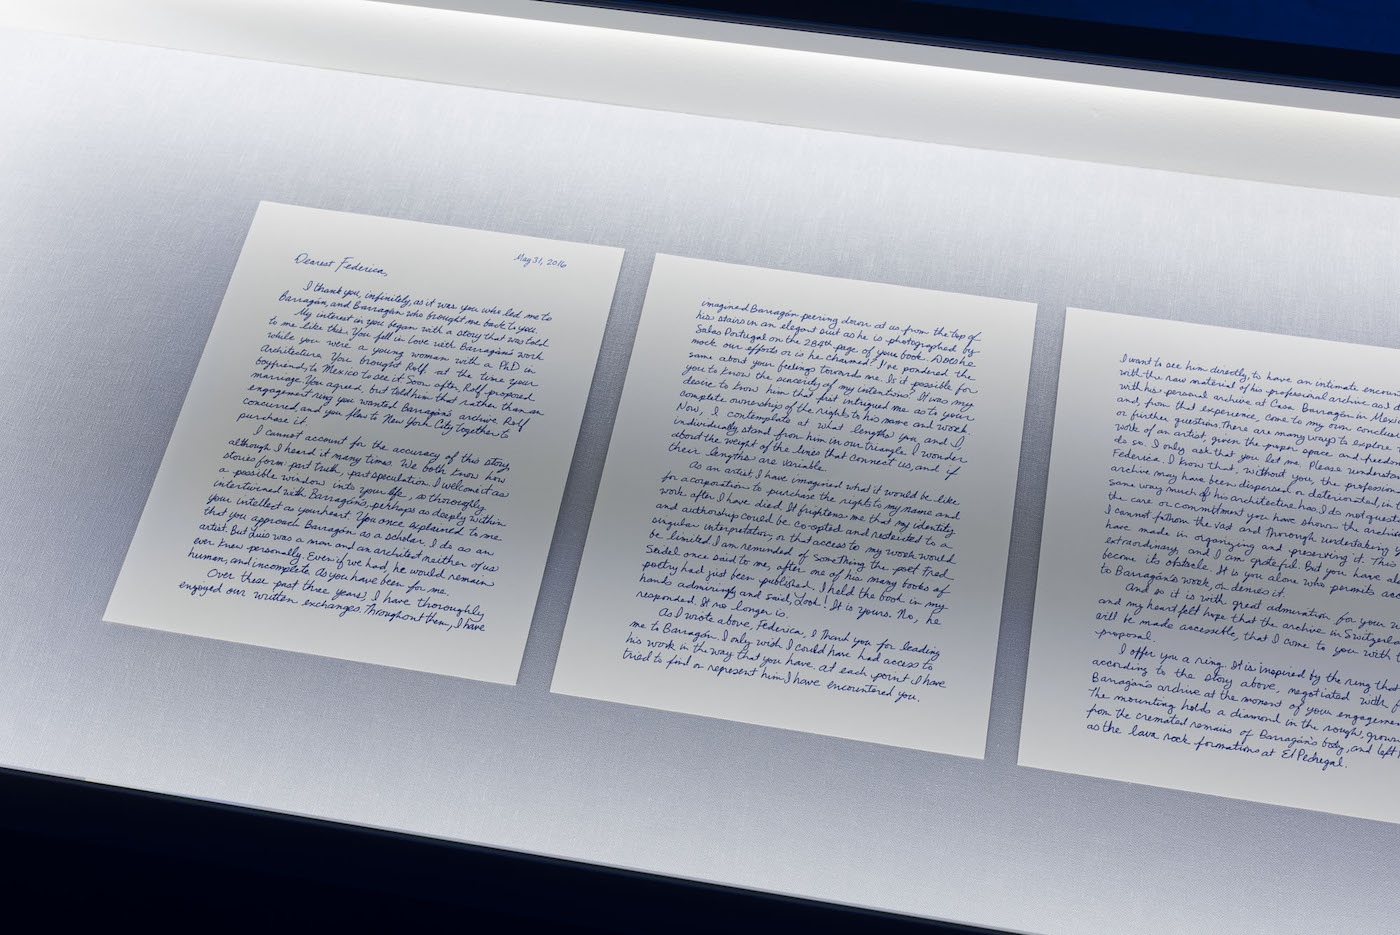 """Jill Magid, facsimile of the """"Proposal Letter"""" to Federica Zanco, 4 pages; 35 x 58.5 x 21.5 in (photograph by Stefan Jaeggi for Kunst Halle Sankt Gallen; courtesy of the artist; LABOR, Mexico City; RaebervonStenglin, Zurich; and Galerie Untilthen, Paris."""